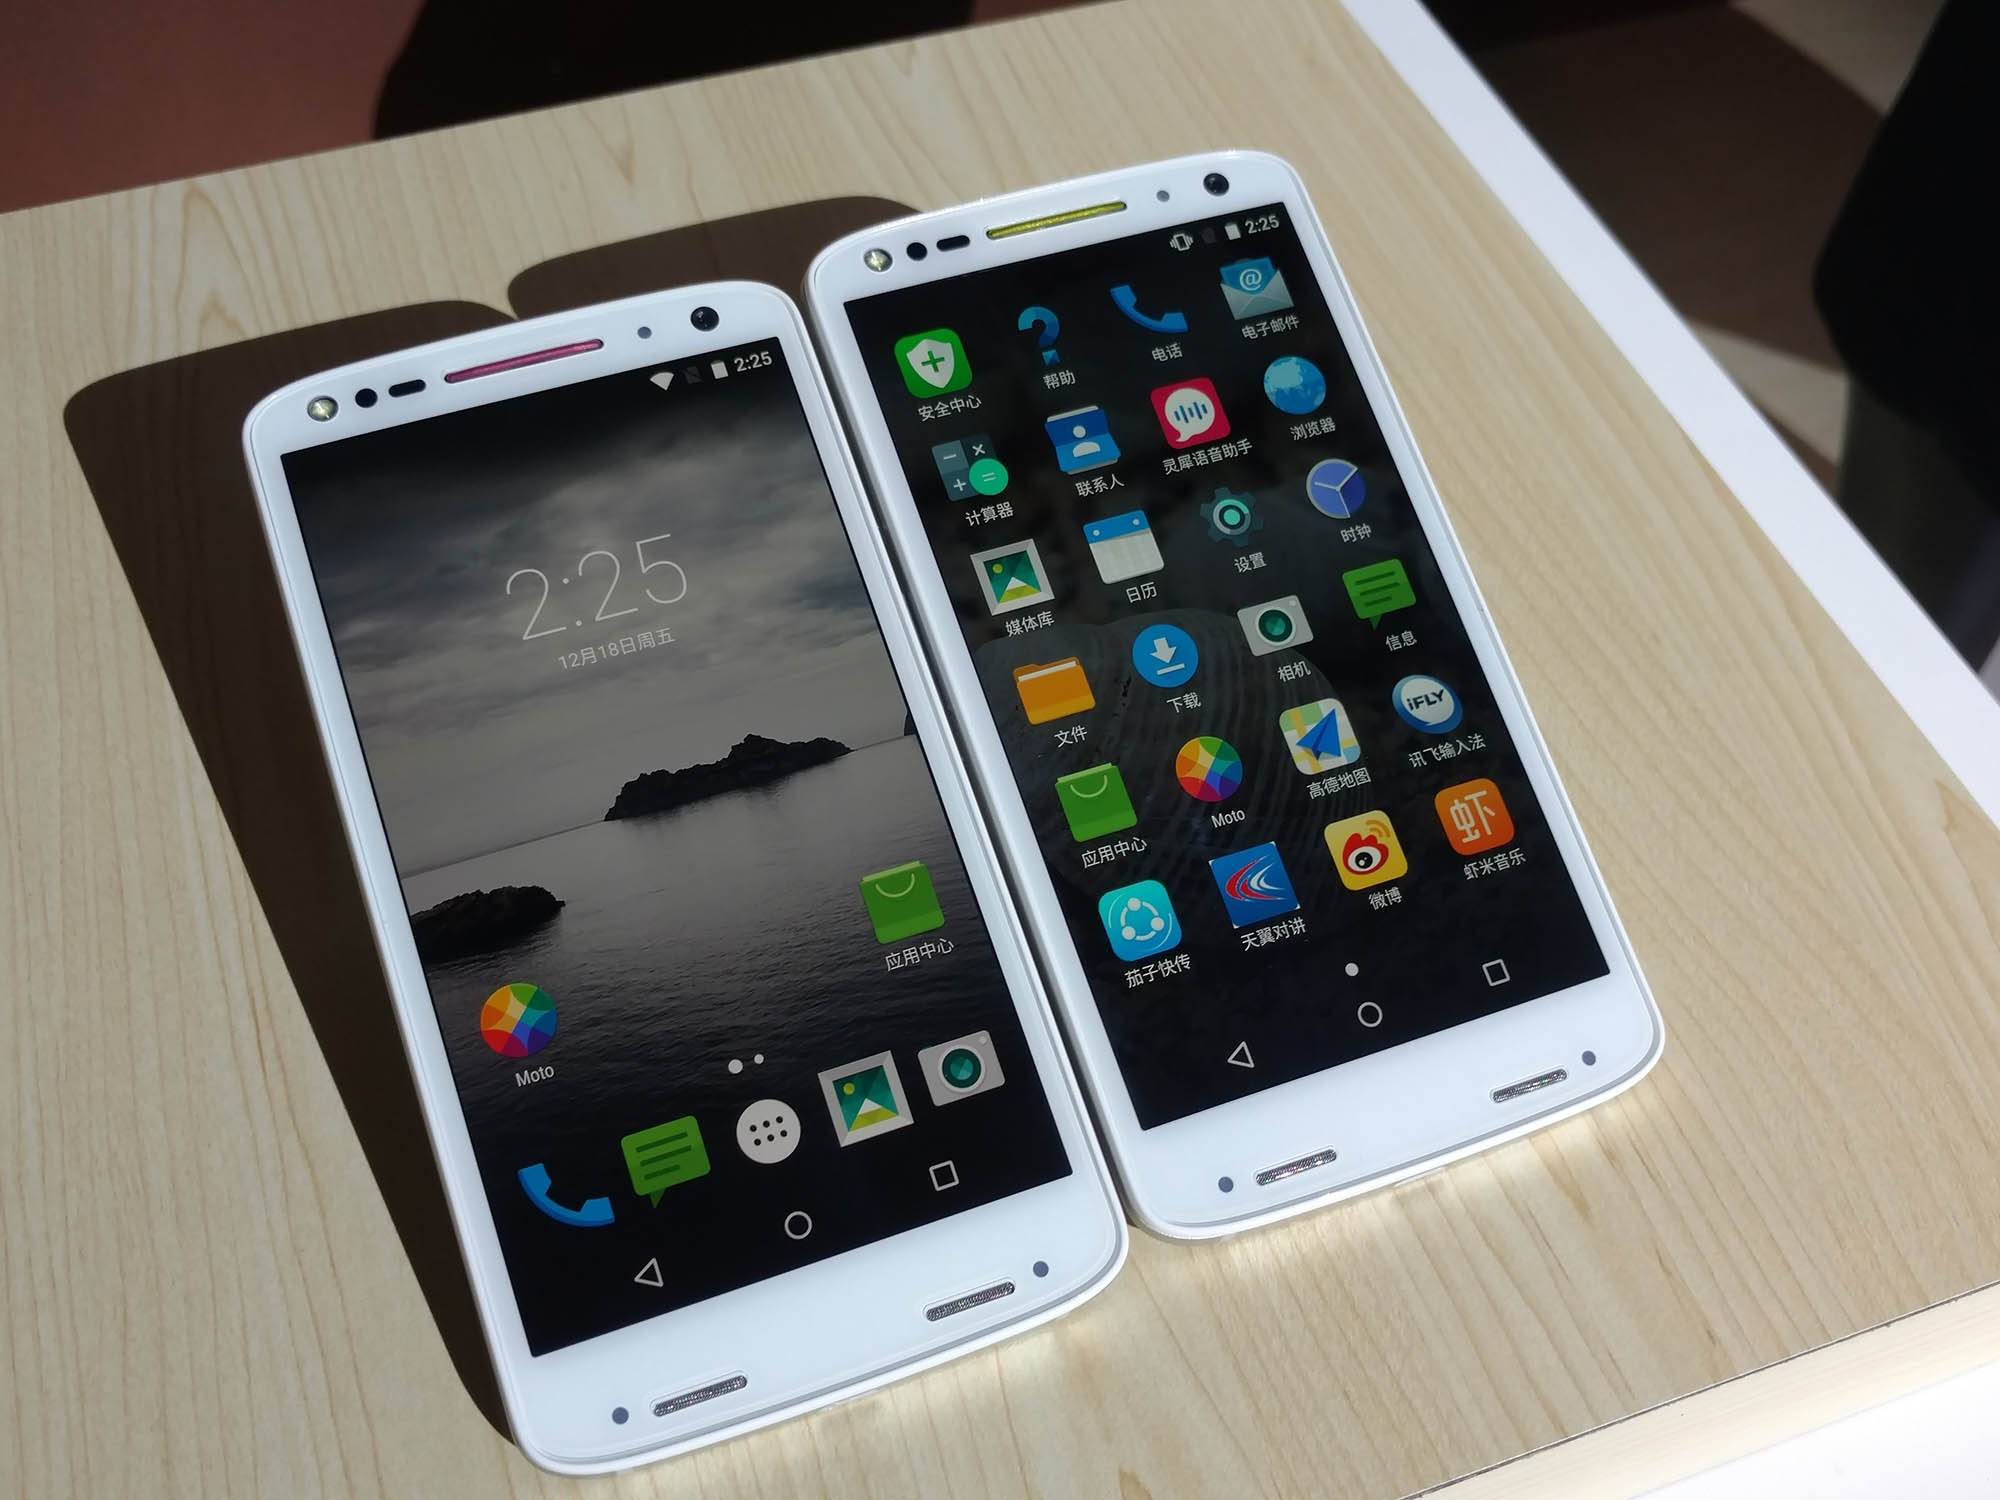 Motorola Moto X Force haoying 4